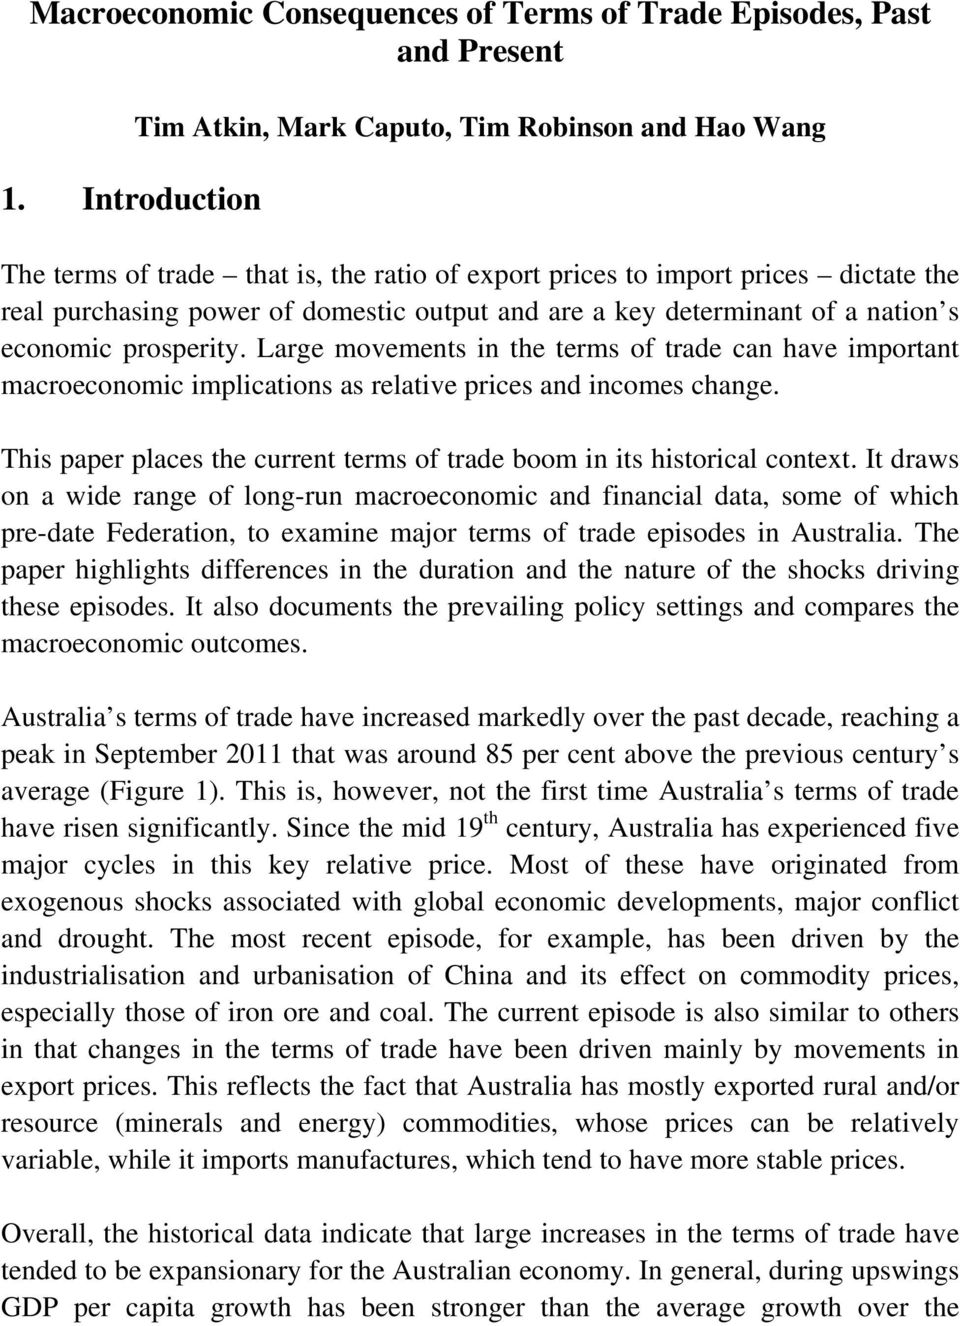 key determinant of a nation s economic prosperity. Large movements in the terms of trade can have important macroeconomic implications as relative prices and incomes change.